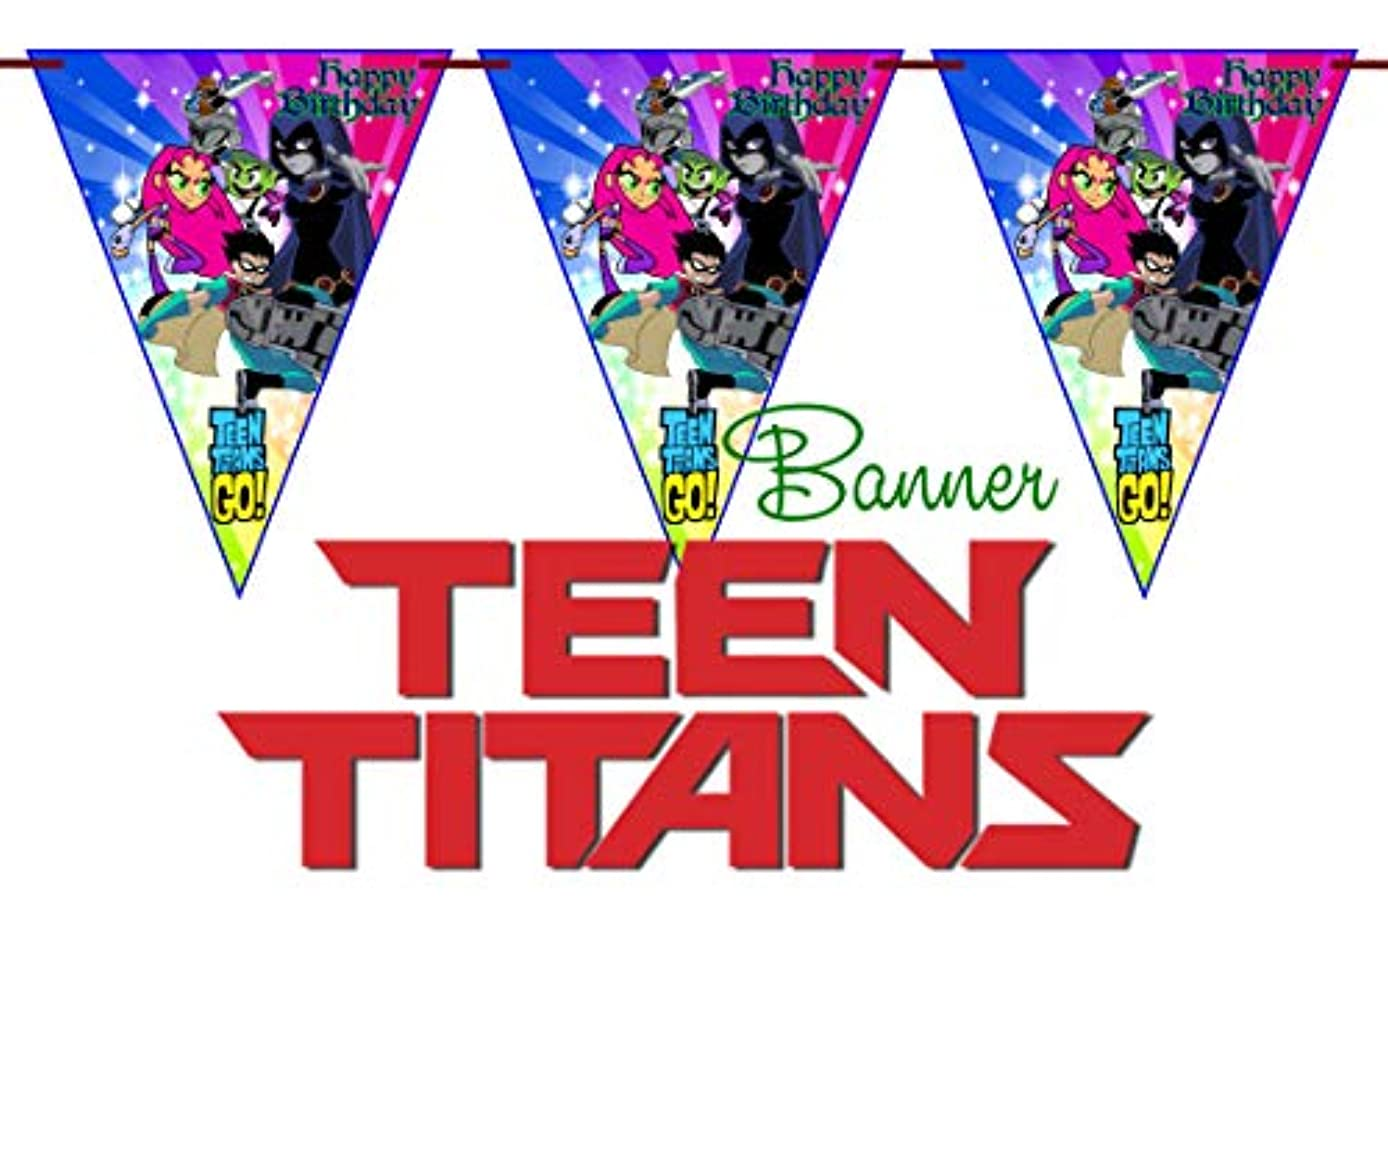 Crafting Mania LLC.. 10 TEEN TITANS Special Triangles For Birthday Banners